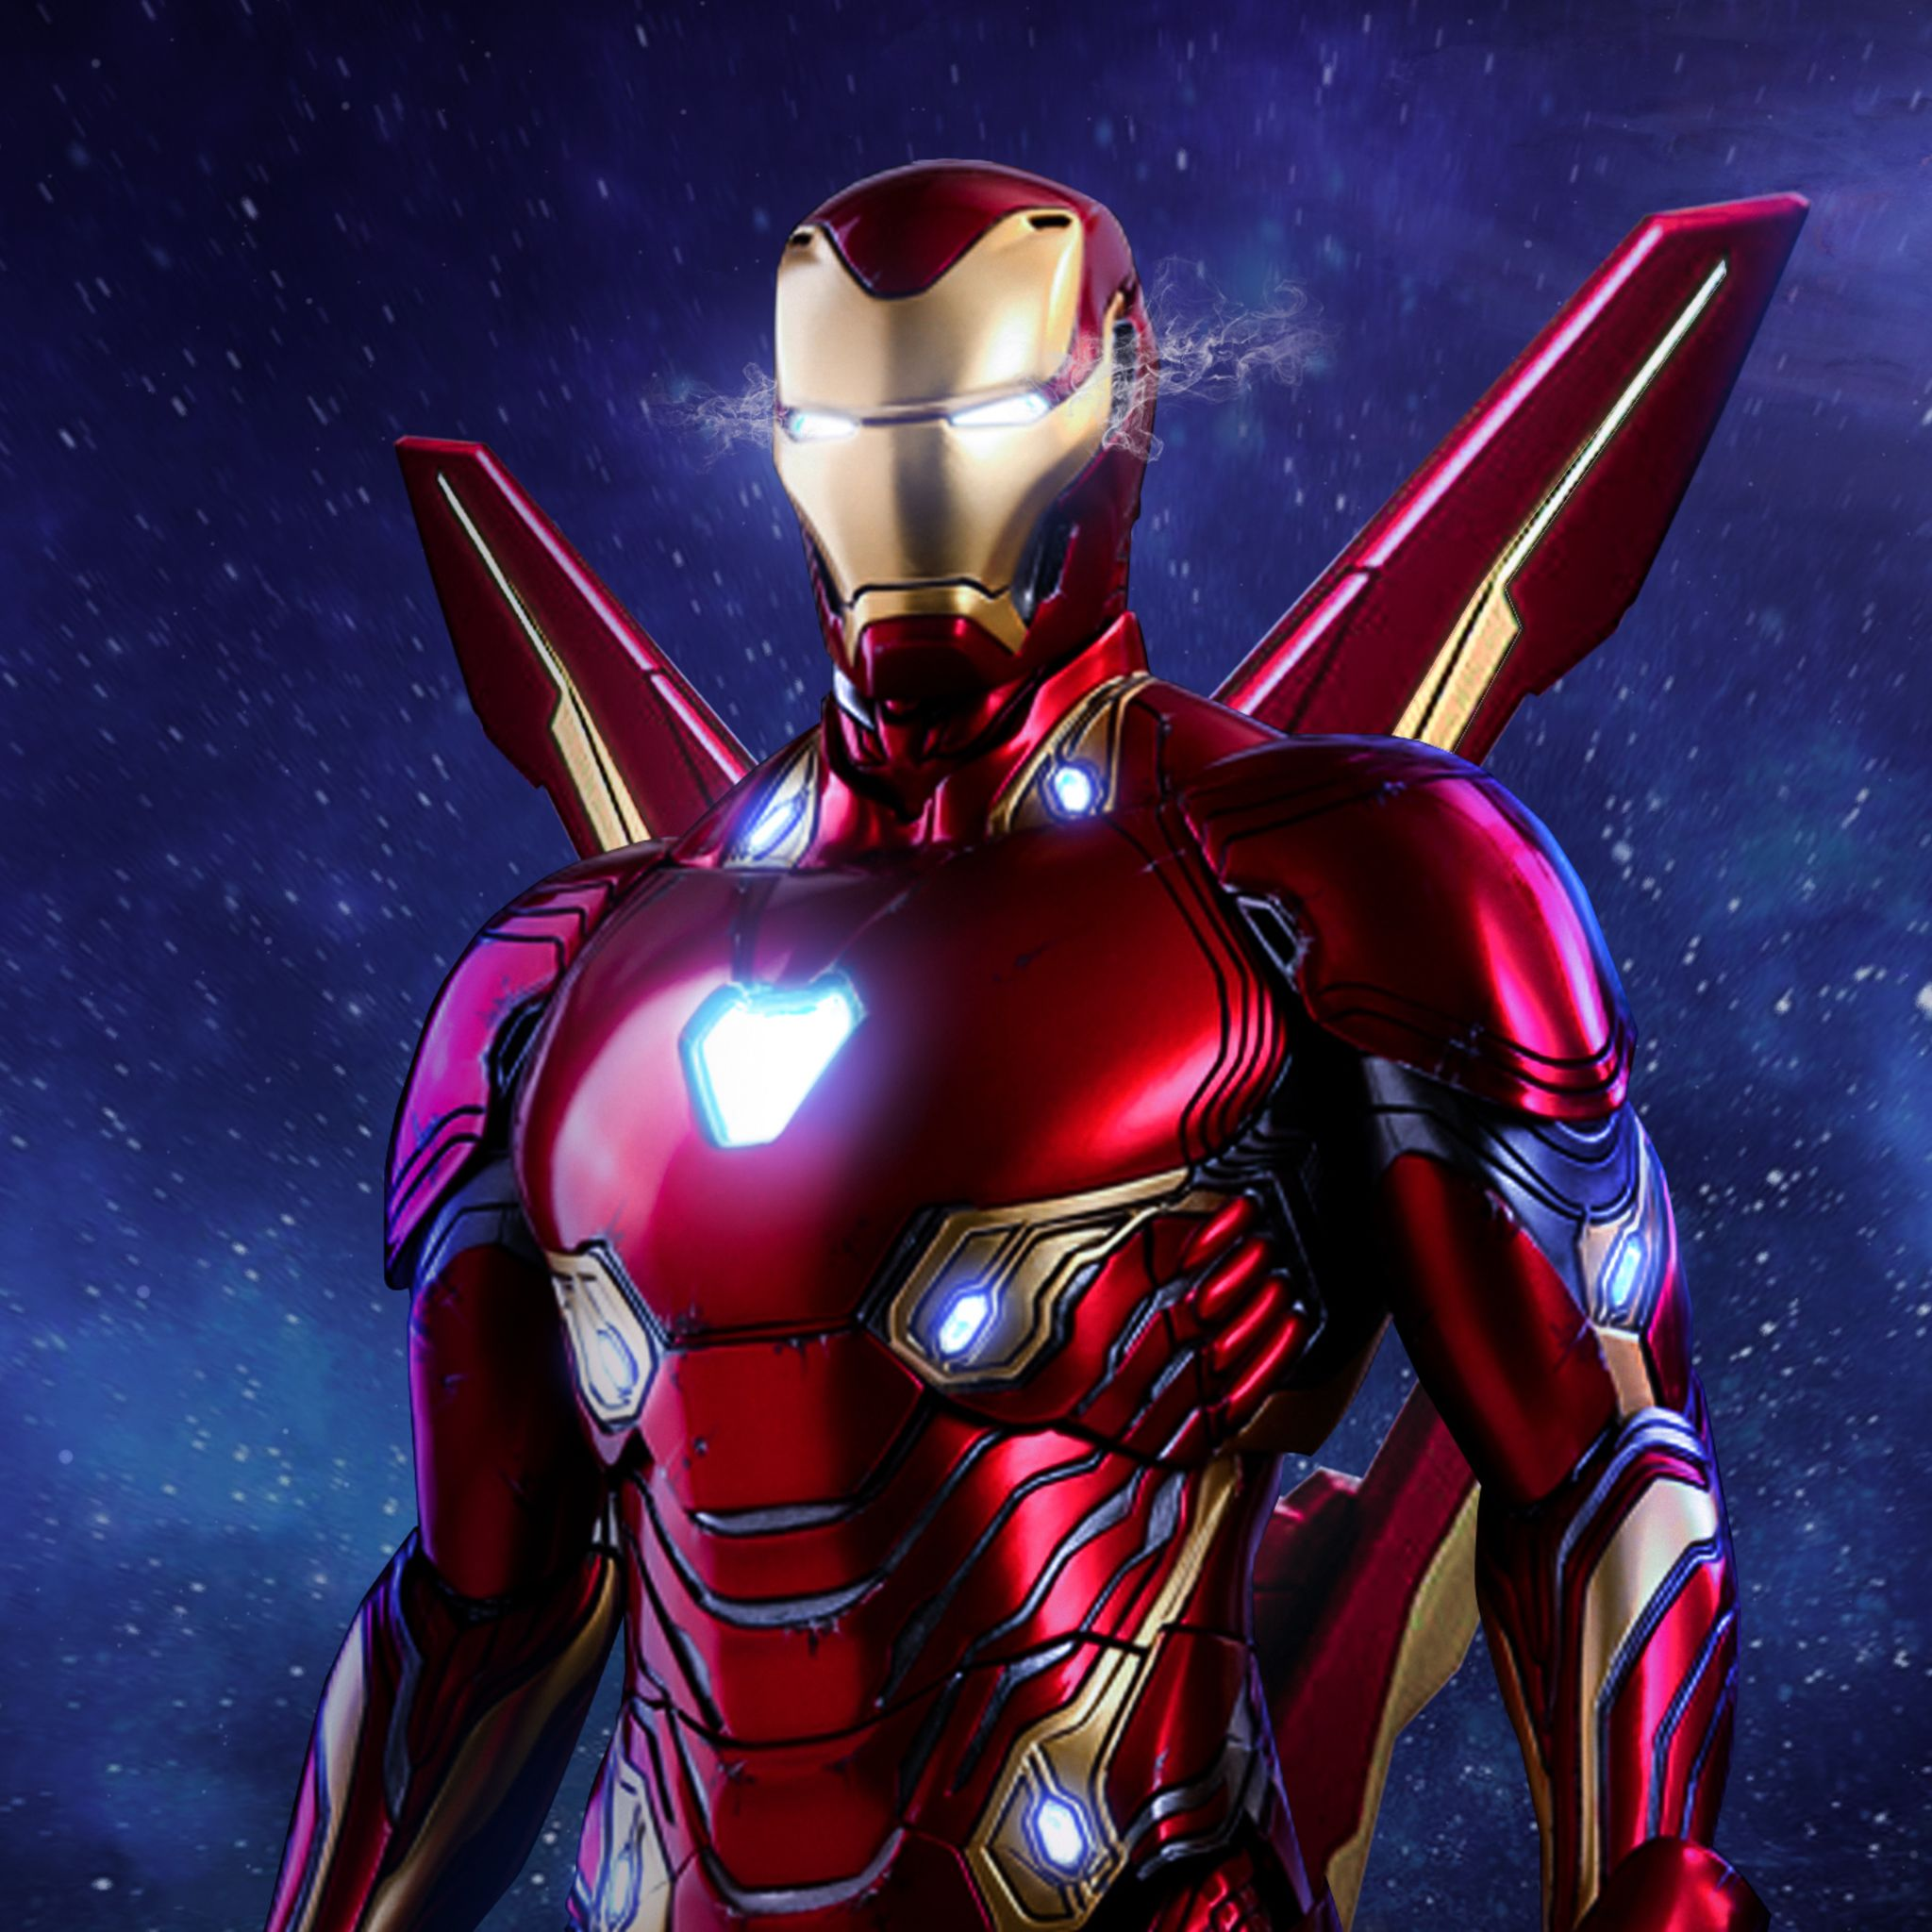 2048x2048 Iron Man Avengers Infinity War Suit Artwork Ipad Air Hd 4k Wallpapers Images Backgrounds Photos And Pictures Iron Man Avengers Iron Man Avengers